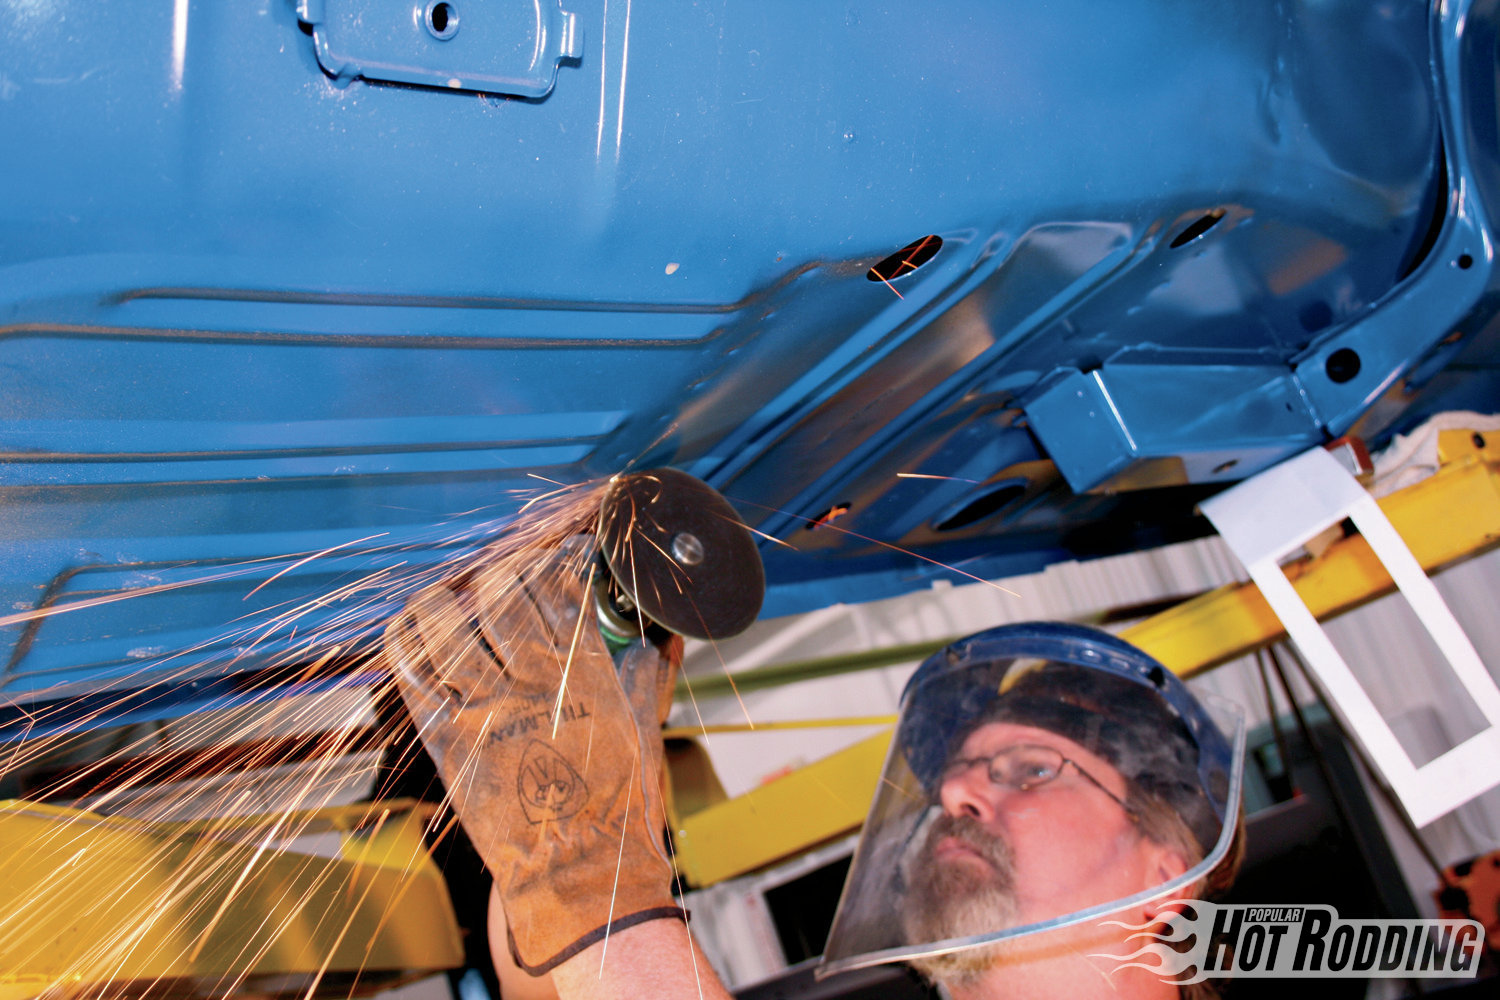 5. Cut the floorpan along the lines using a cutoff wheel. To prepare the floor for welding, remove paint from around the edges of the cutout area using a grinder. Strip the front subframe down to bare metal as well.